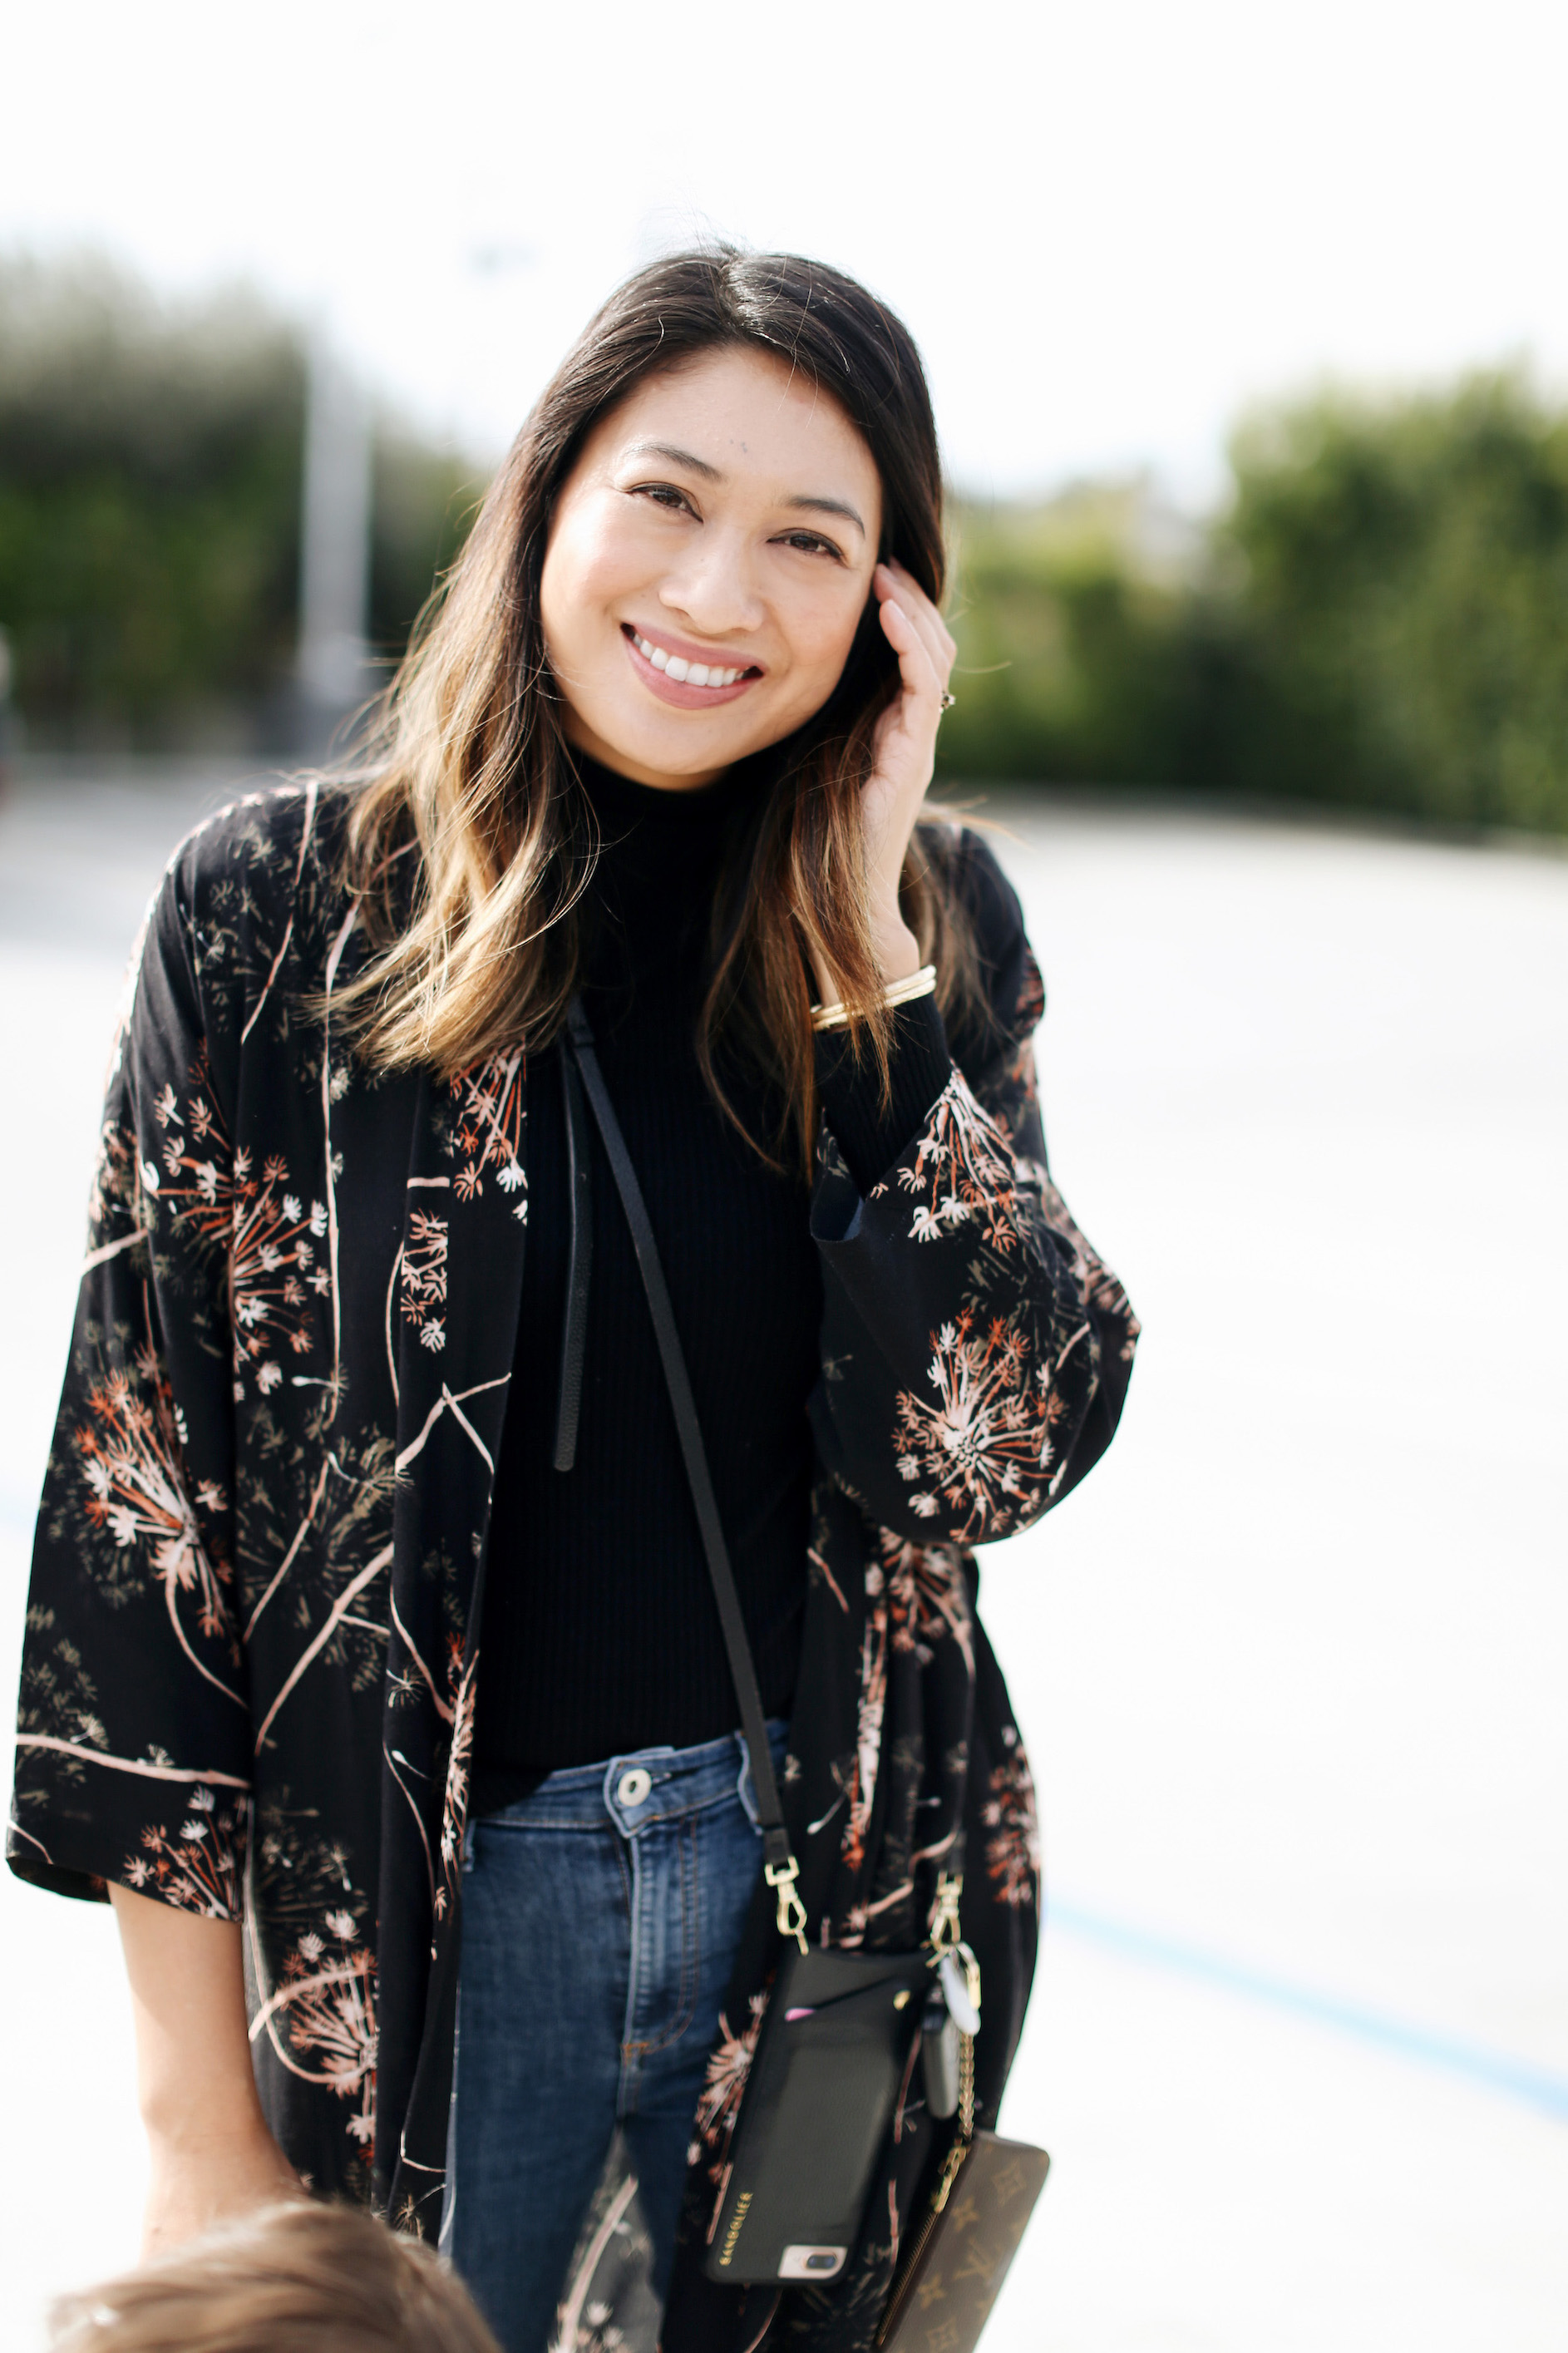 Sseko Designs Dandelion print duster | A Week Of Polished & Professional Outfits With Sustainable Lifestyle Blogger Jonilyn Brown on The Good Trade